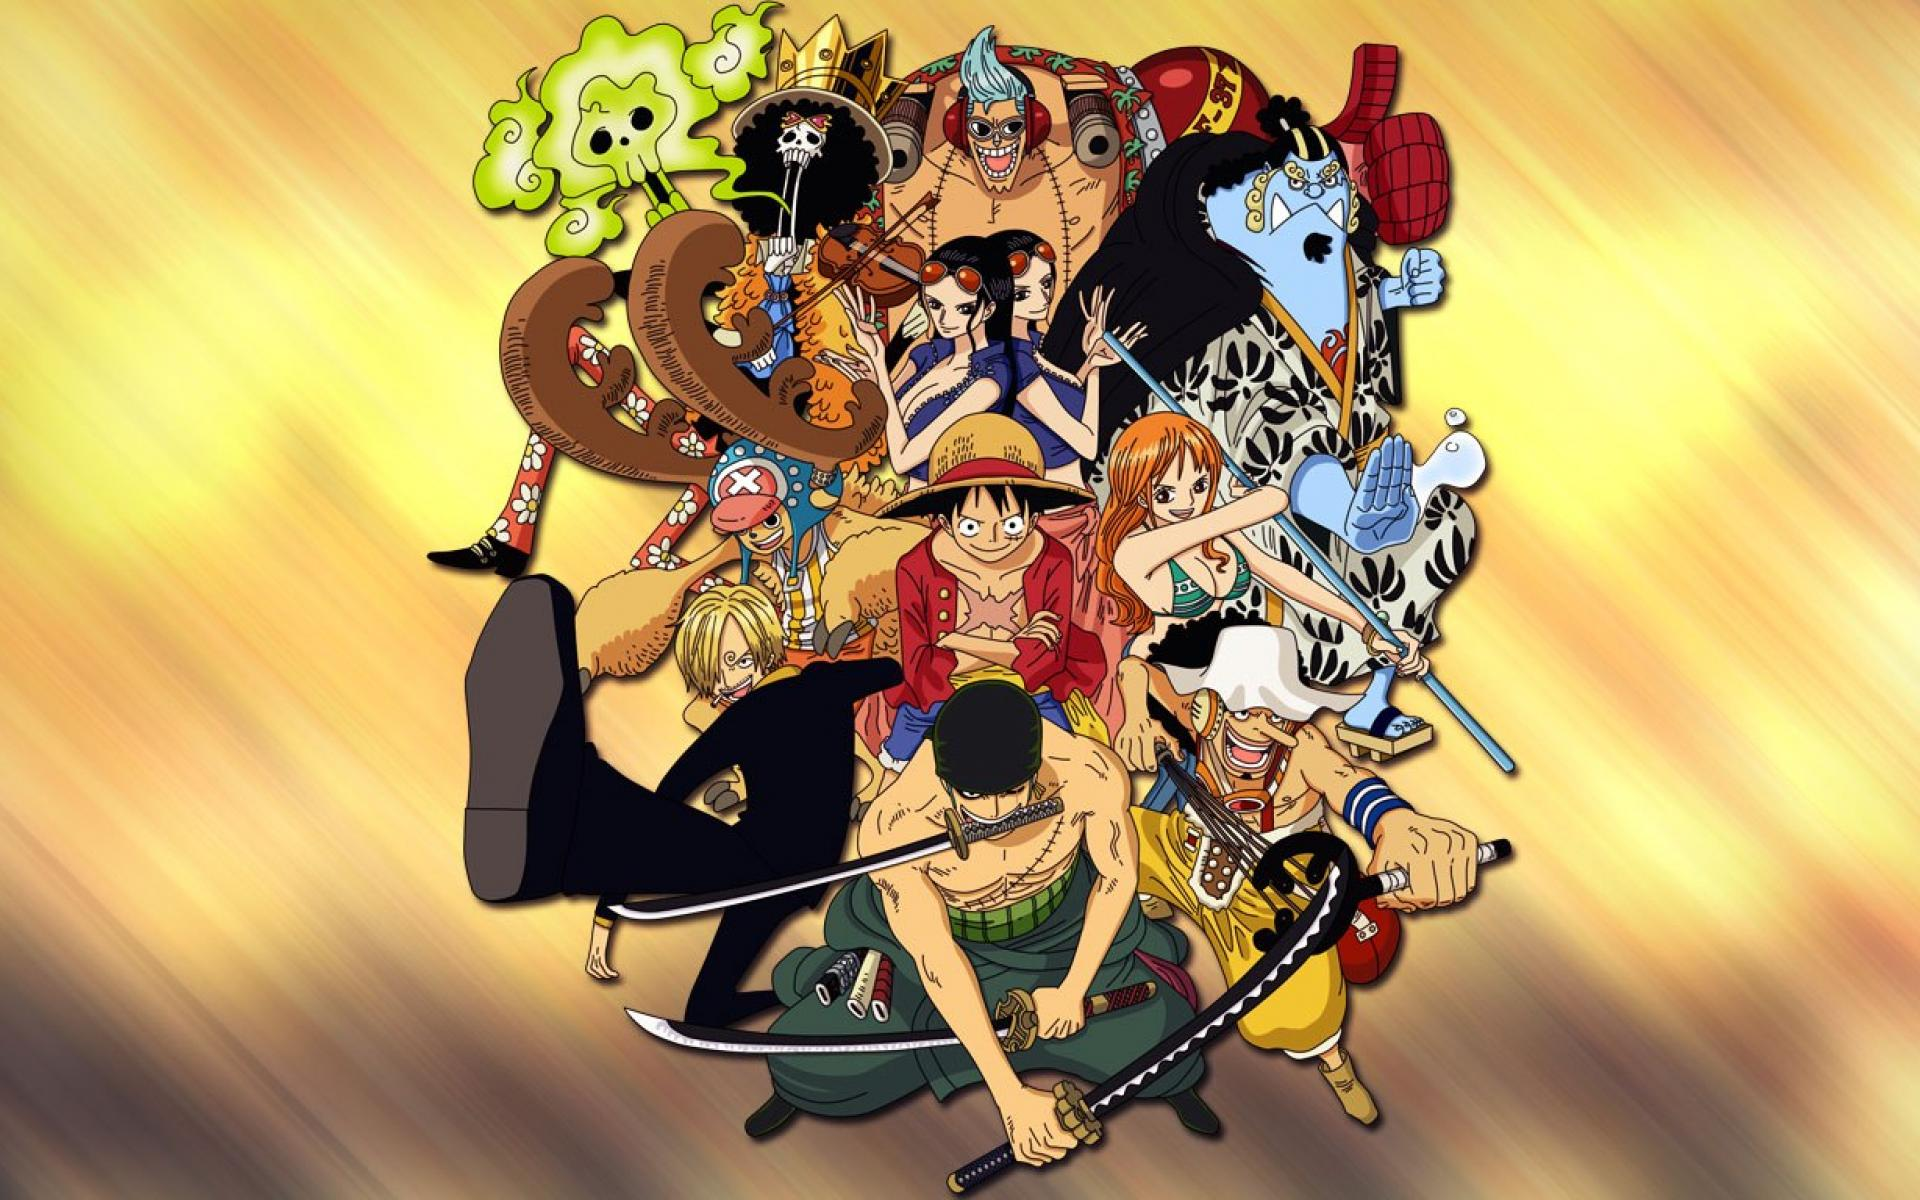 Carefully selected 41 best one piece wallpapers, you can download in one click. Download One Piece Wallpaper Luffy New World Gallery